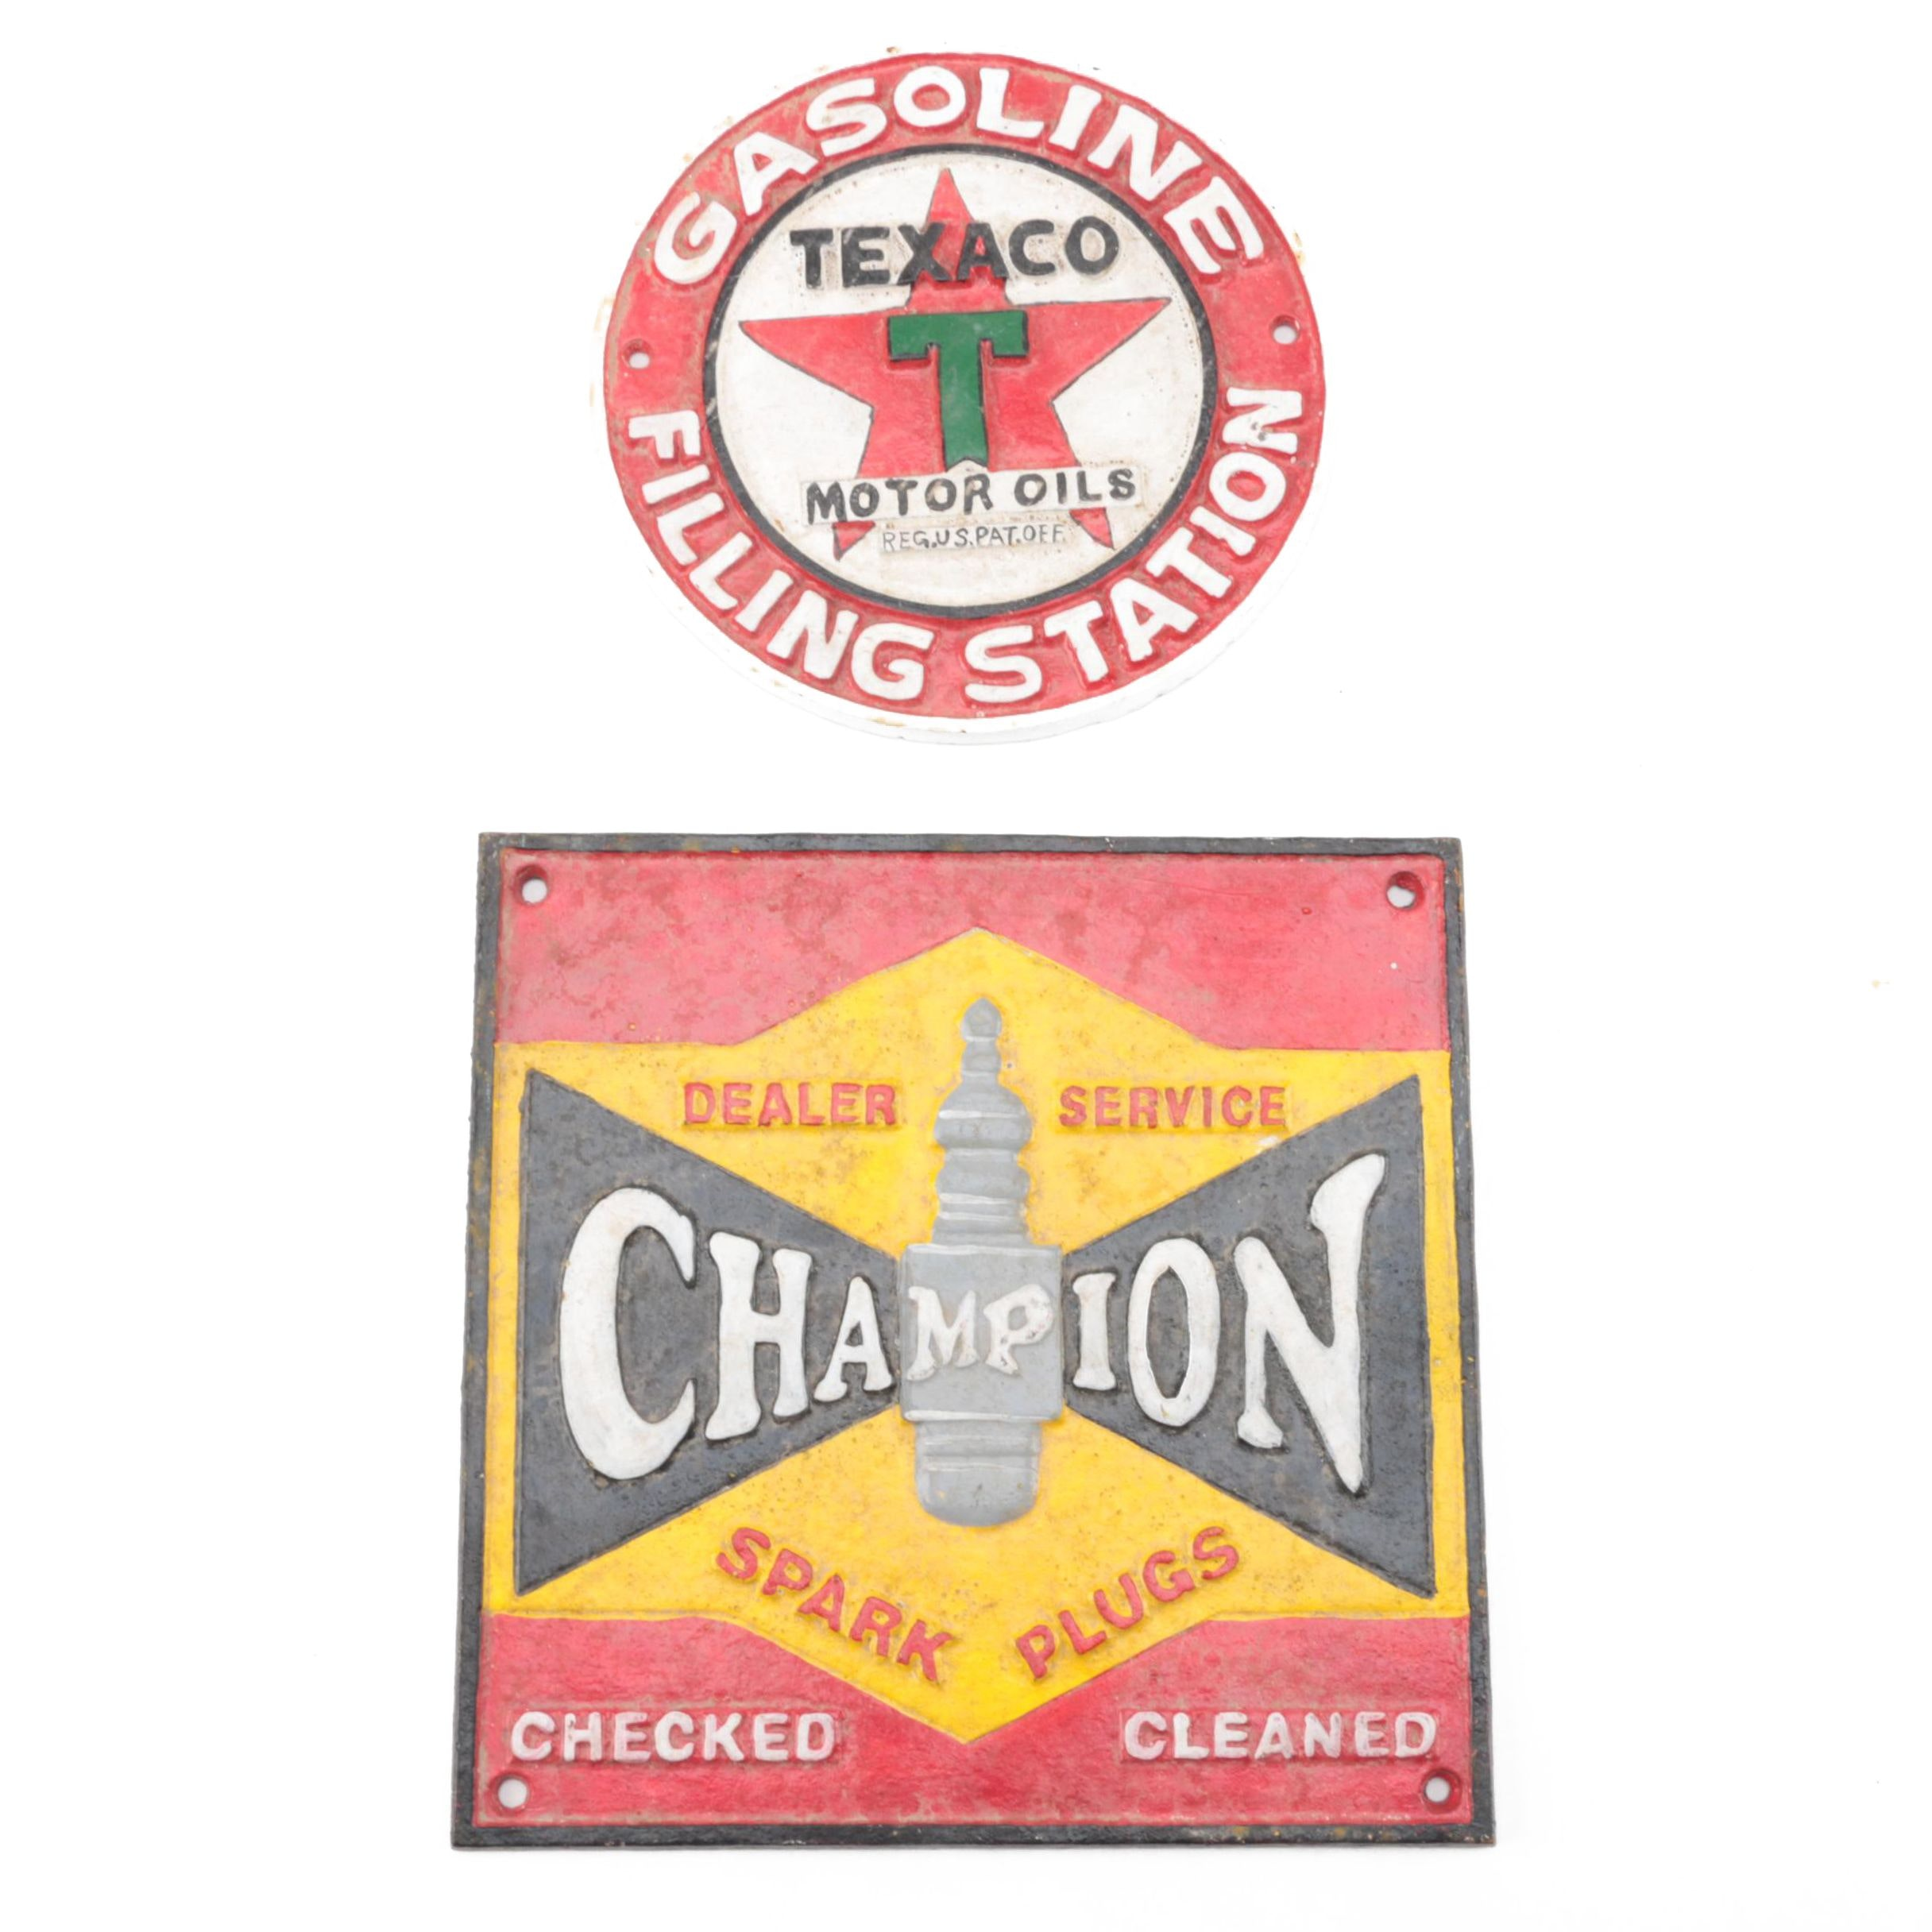 Champion Spark Plugs and Texaco Motor Oil Cast Iron Signs